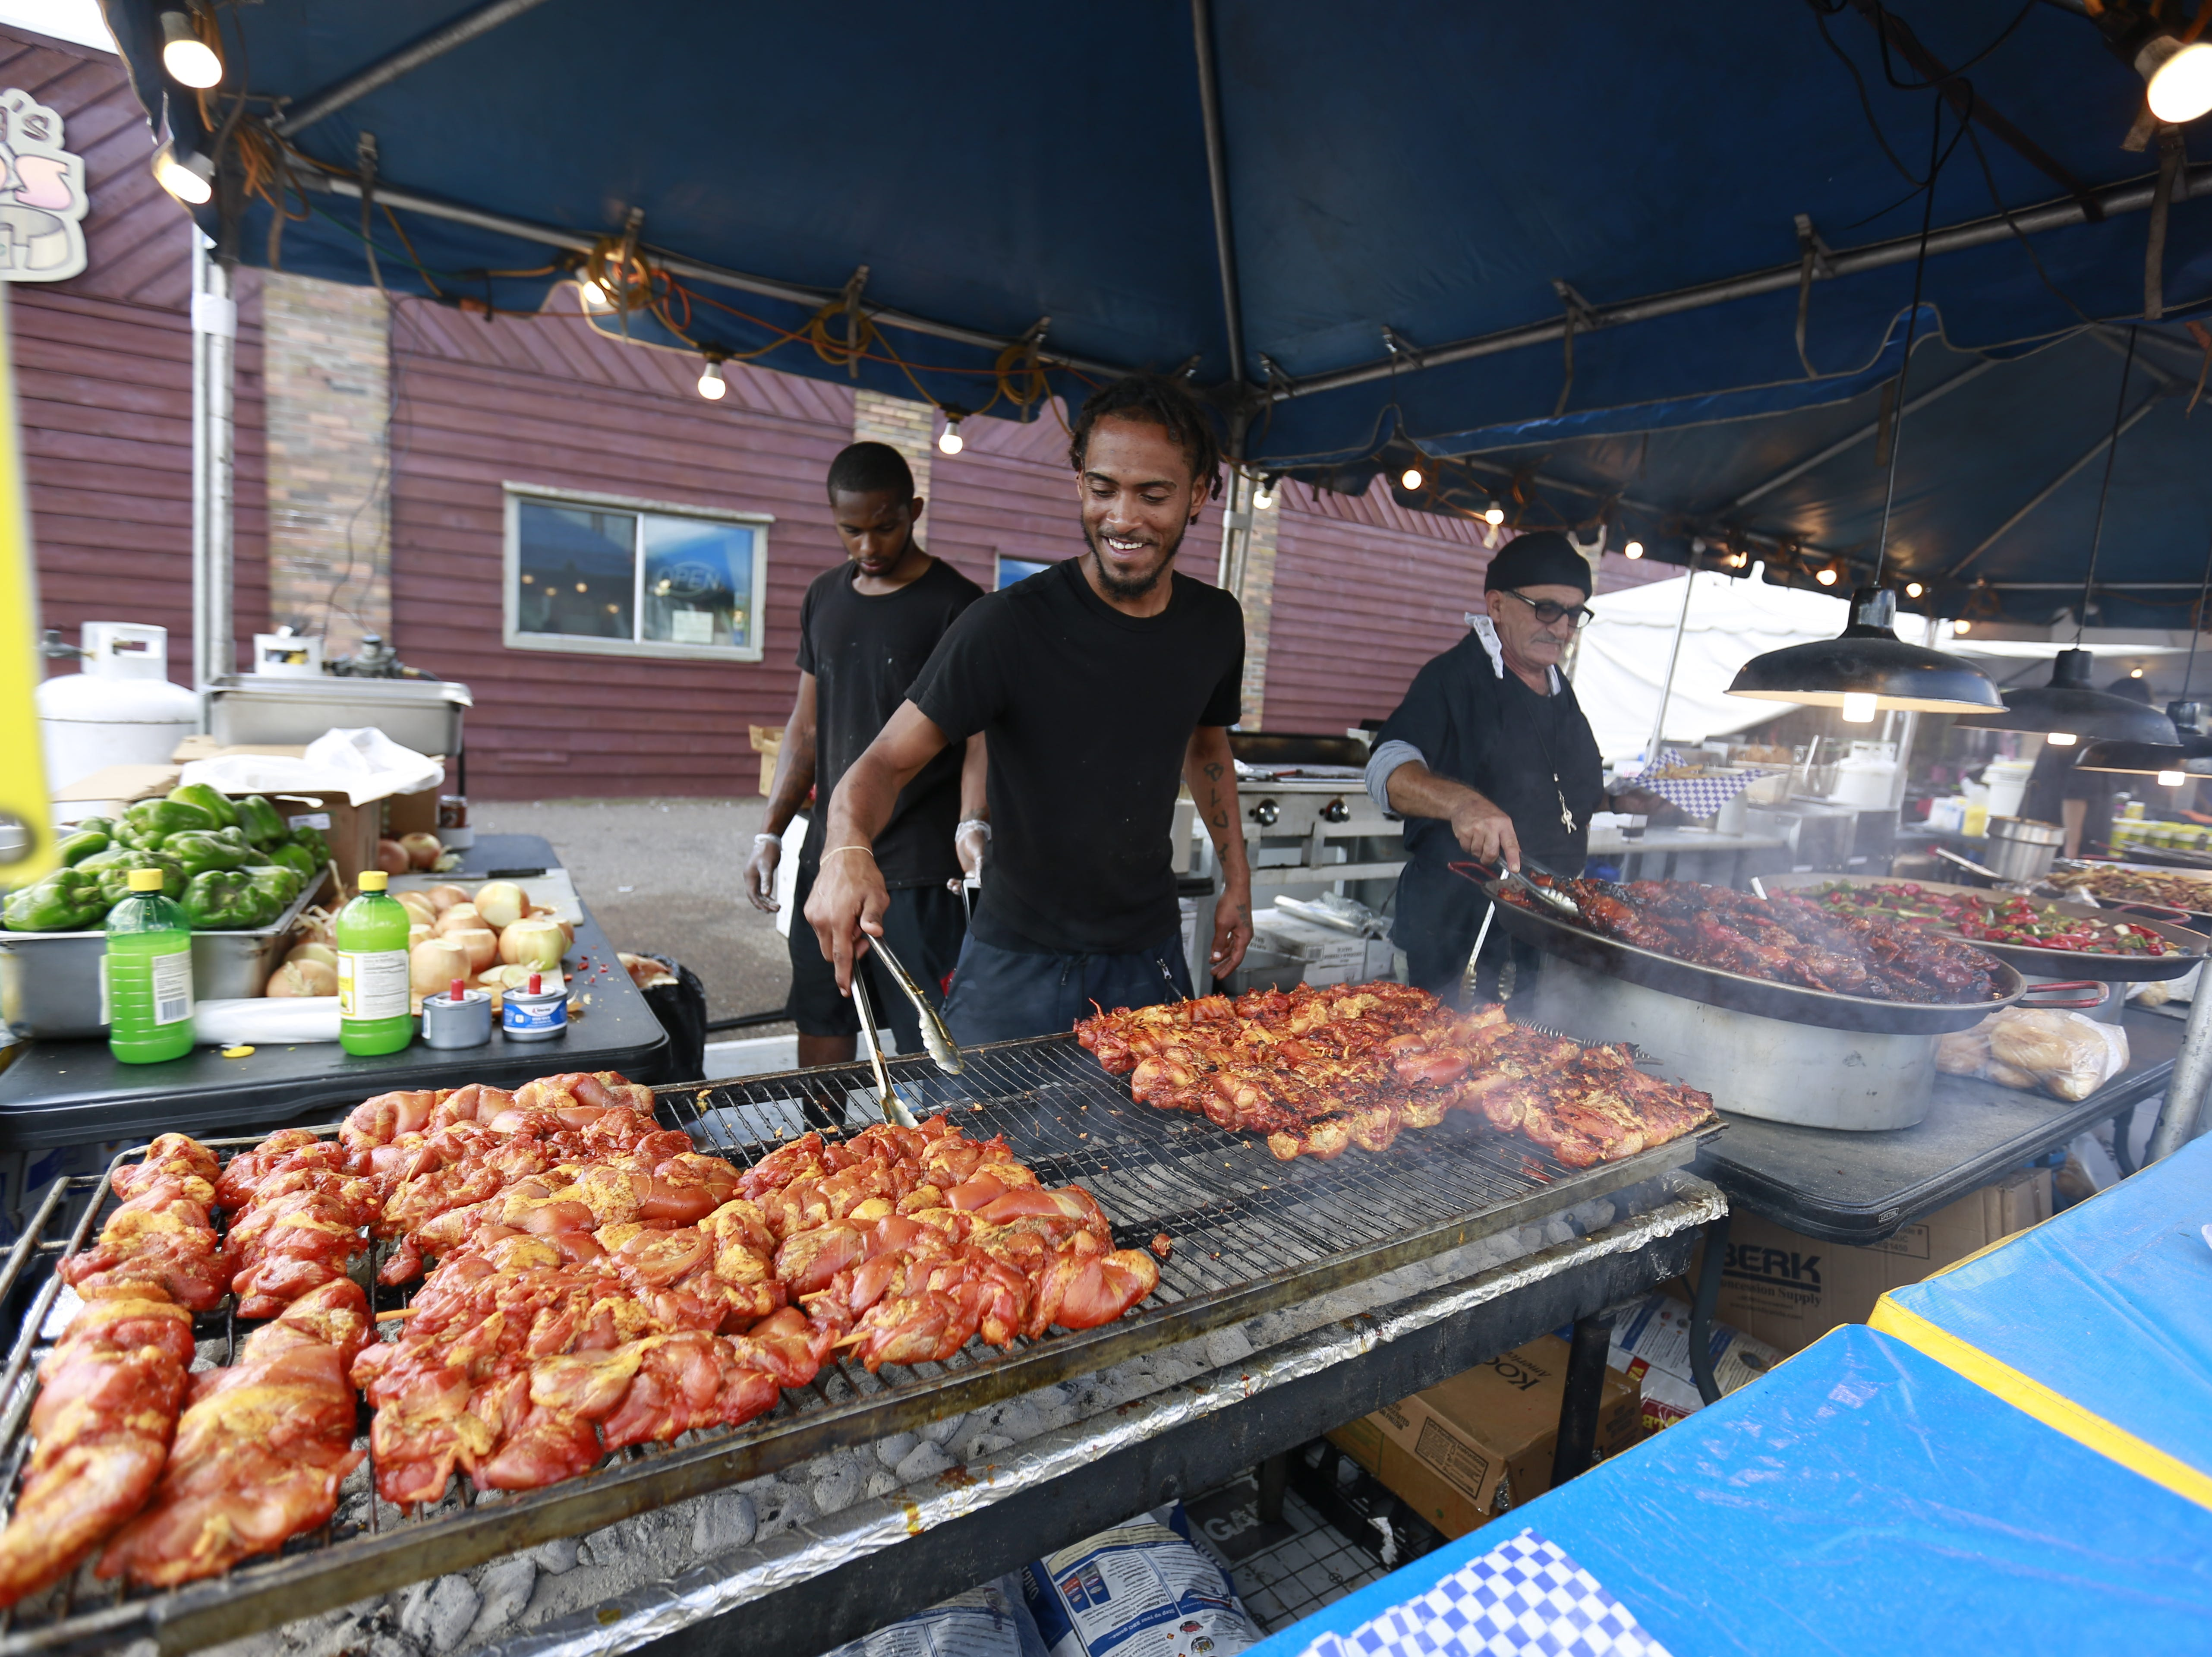 James Richard, of Miami, Florida, grills chickens during the 37th Annual Tomahawk Fall Ride Friday, Sept. 14, 2018, at downtown Tomahawk, Wis. T'xer Zhon Kha/USA TODAY NETWORK-Wisconsin